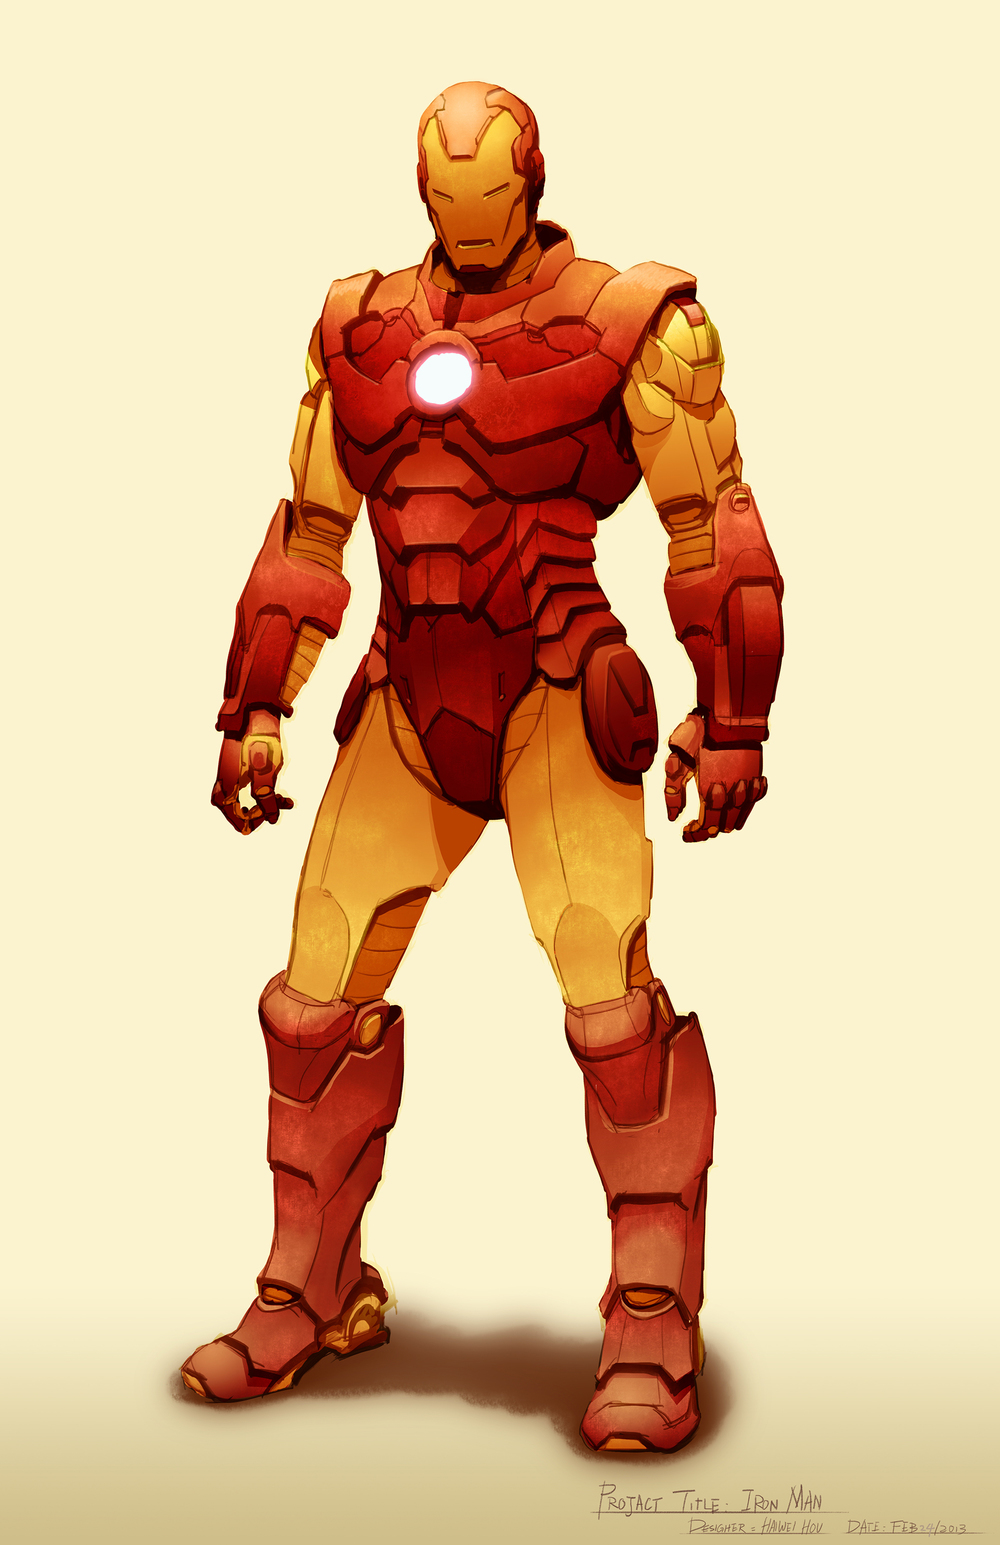 Iron Man Design - Front